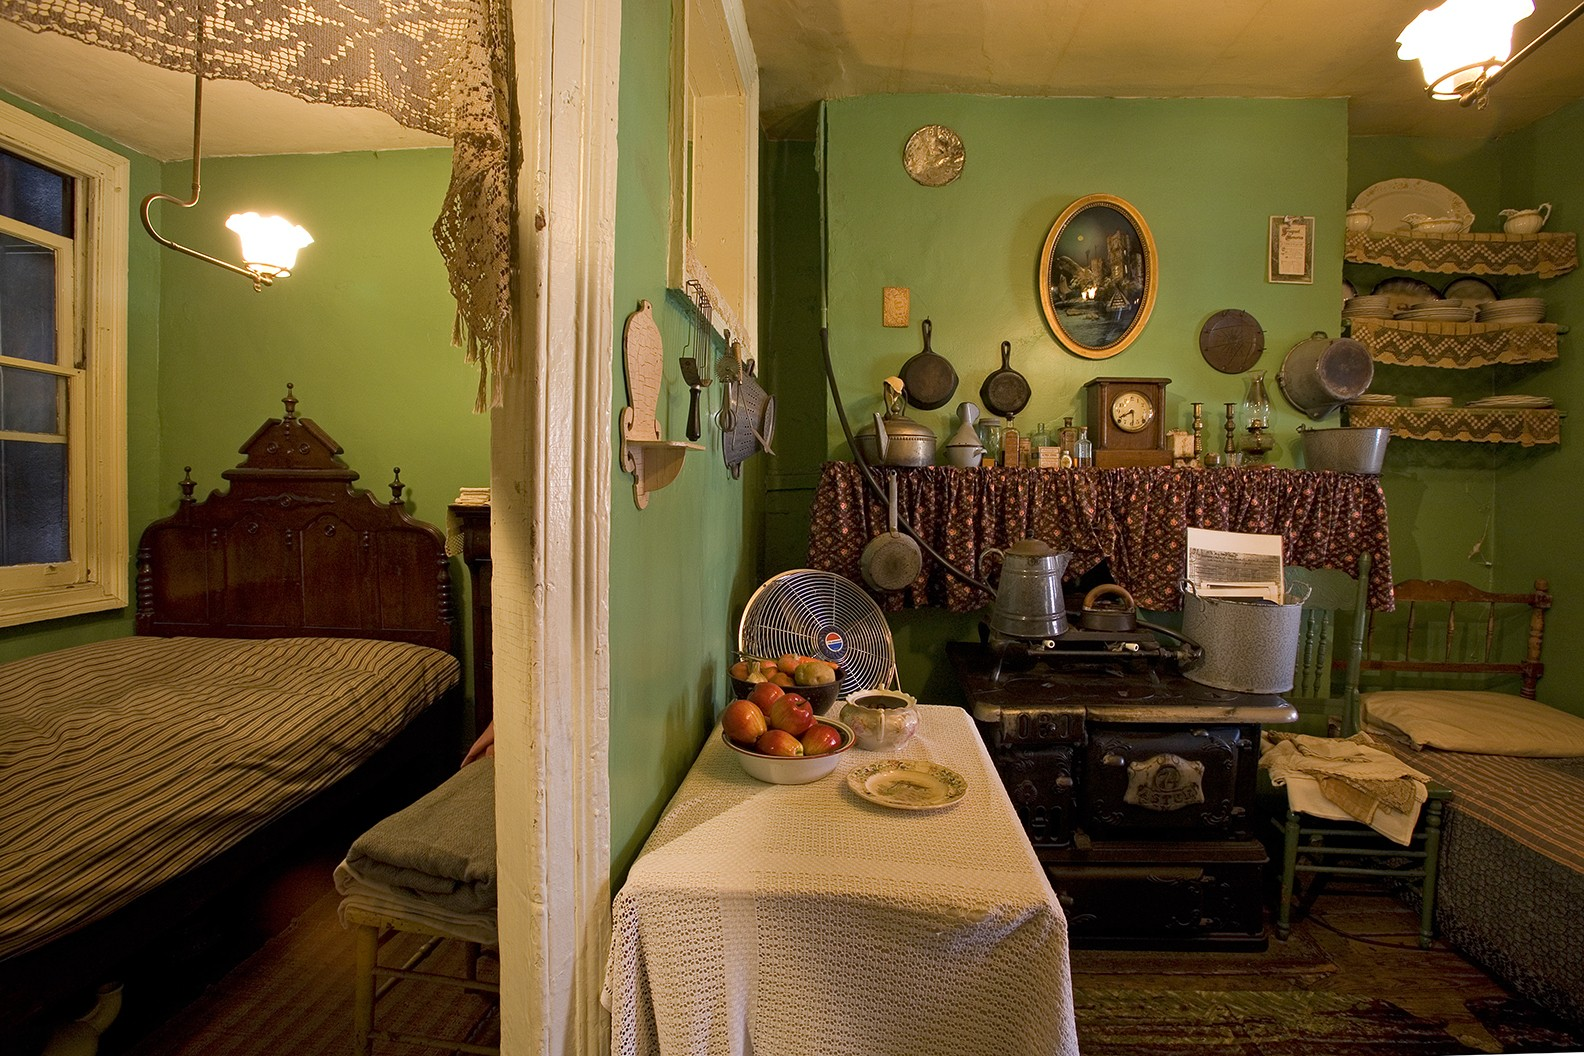 A split view of the recreated 1908 bedroom and kitchen of the Rogarshevsky family